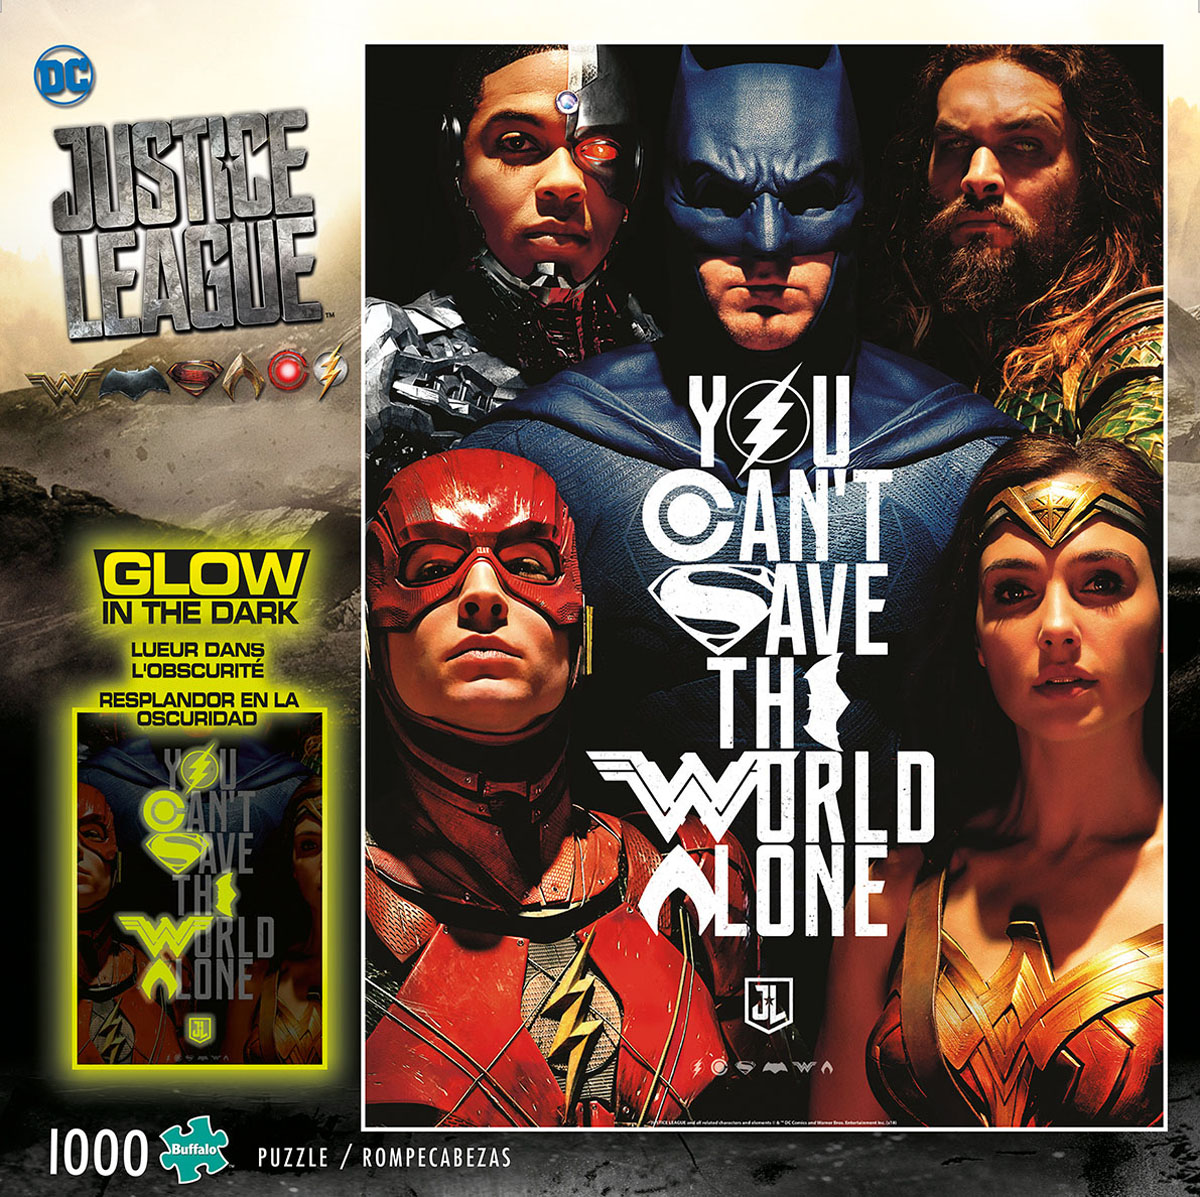 Justice League - You Can't Save the World Alone - Glow in the Dark